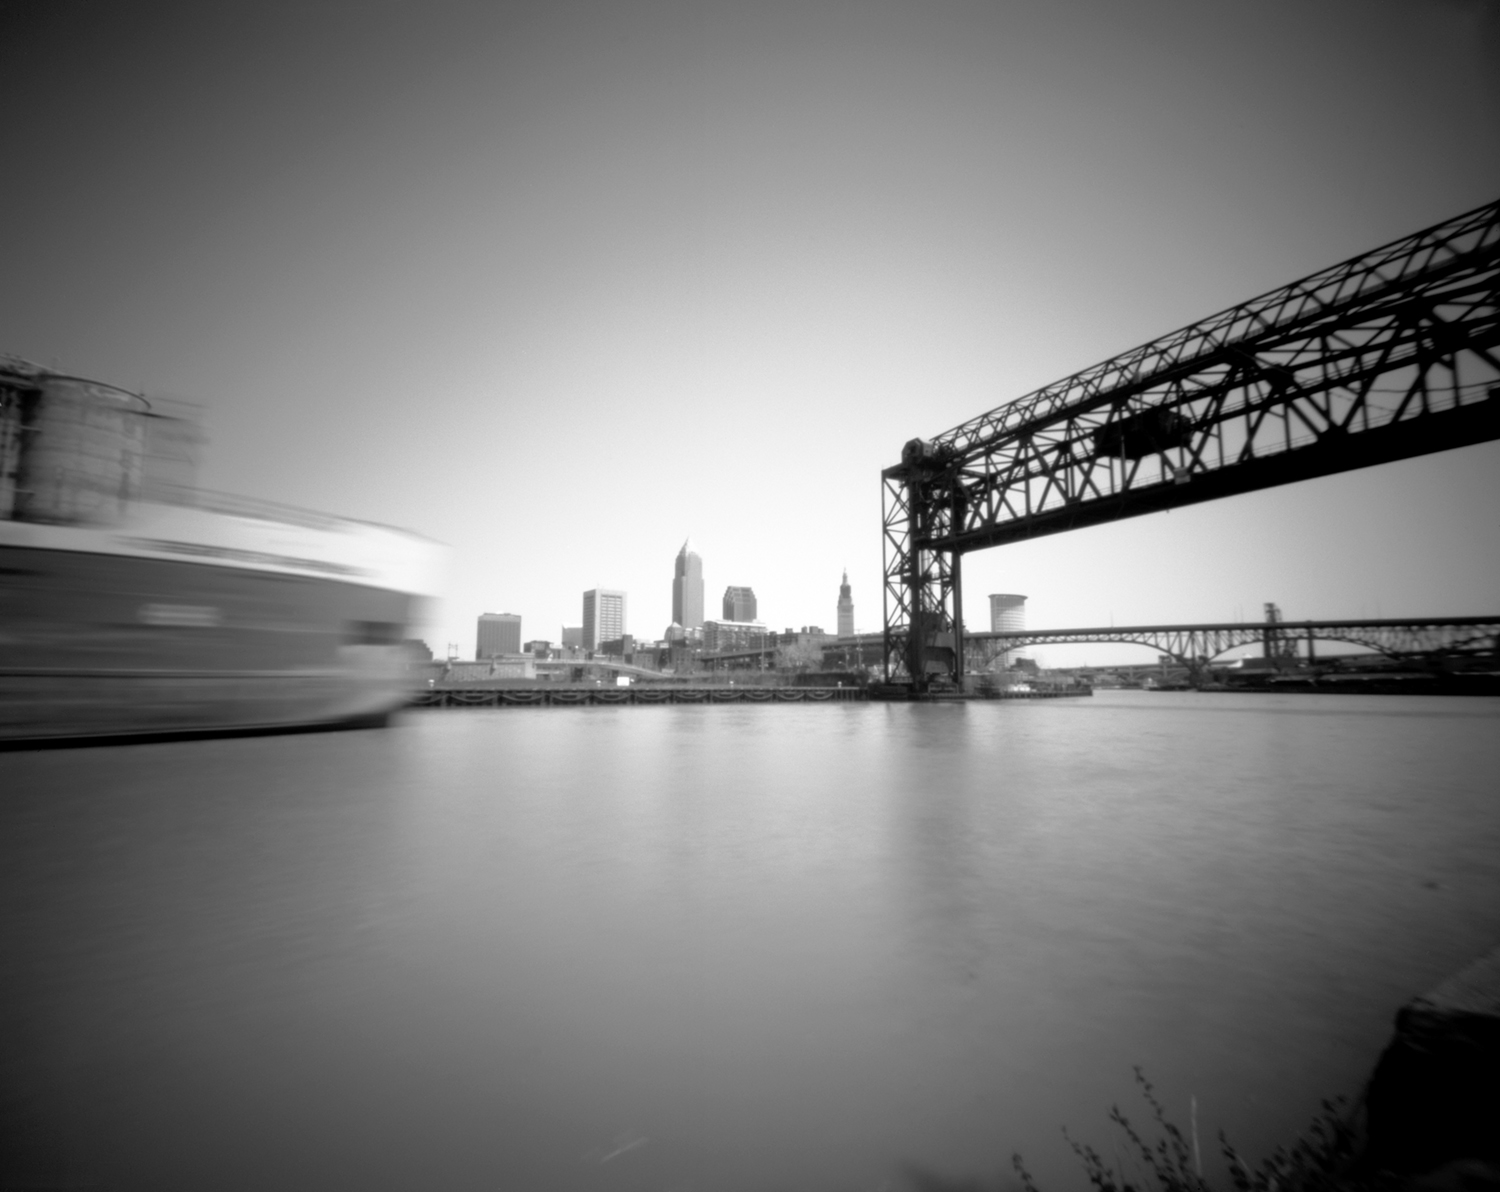 The Robert S. Pierson heads up the Cuyahoga